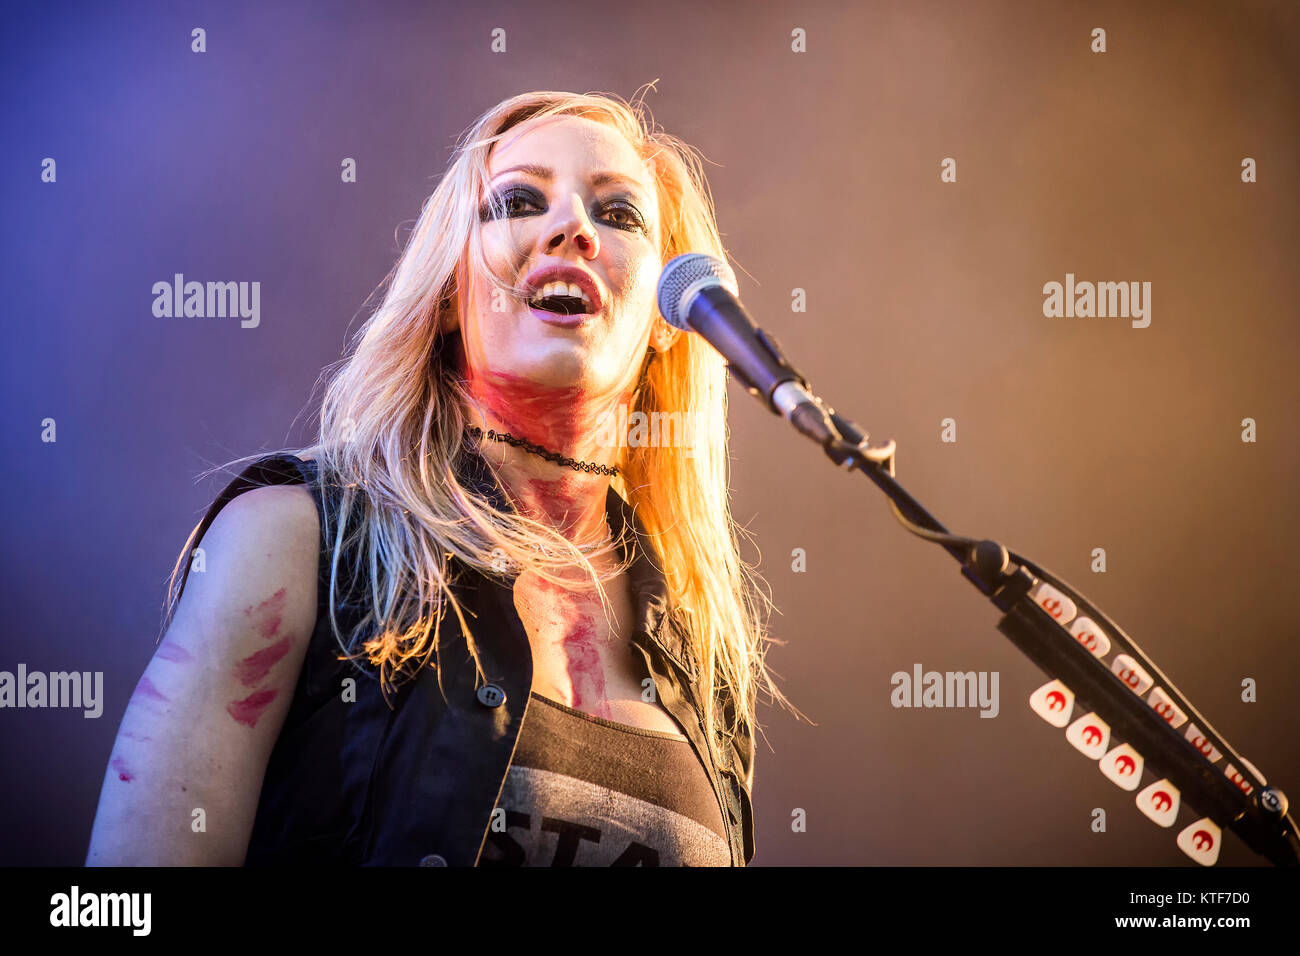 The American singer, songwriter and musician Alice Cooper performs a live concert at the Norwegian music festival - Stock Image